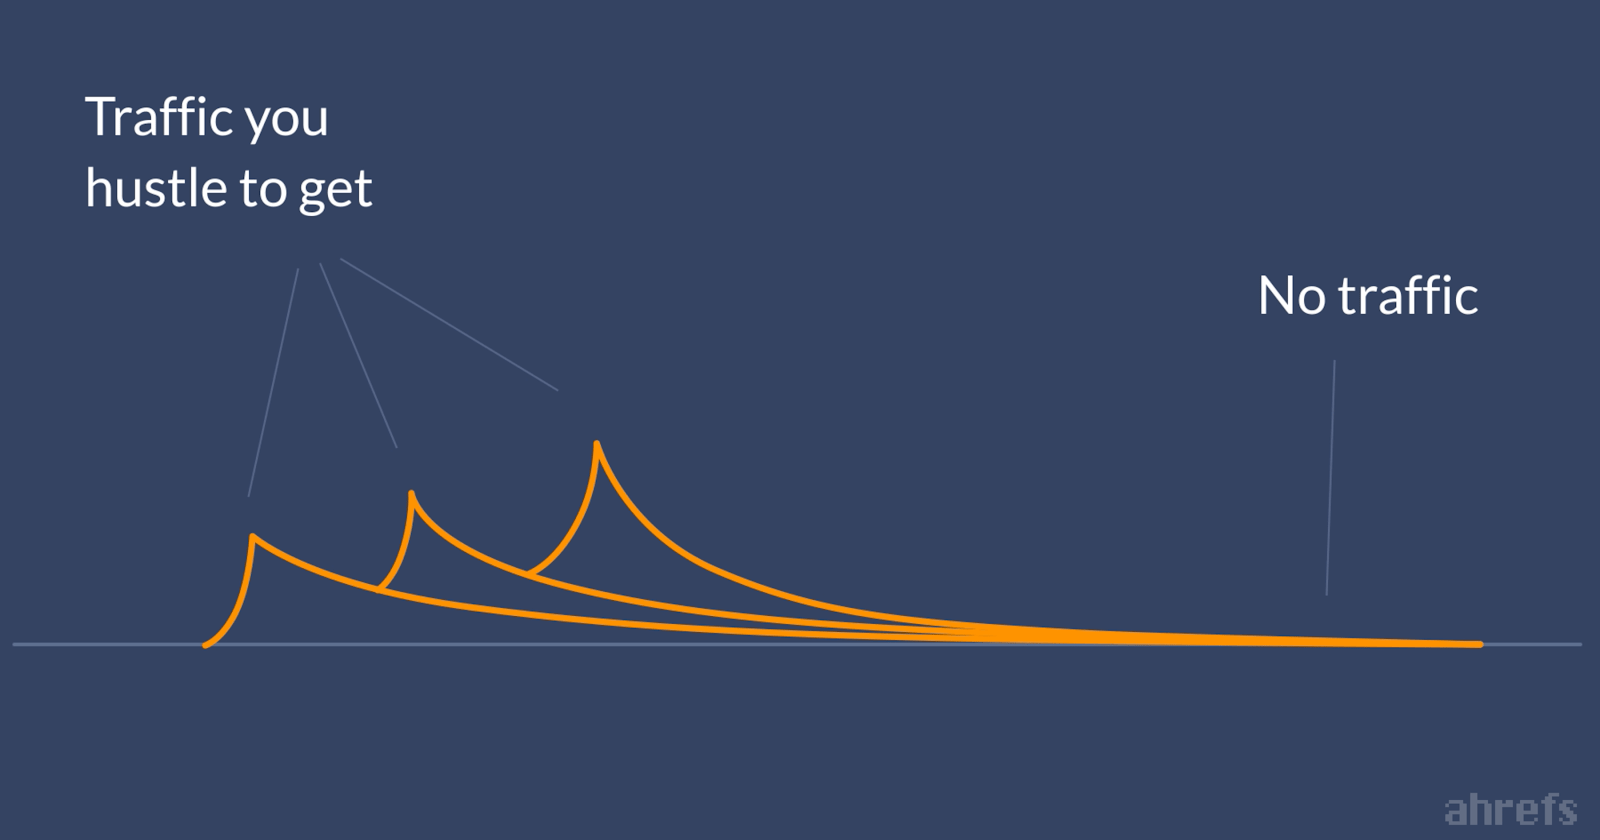 Traffic graph from Ahrefs